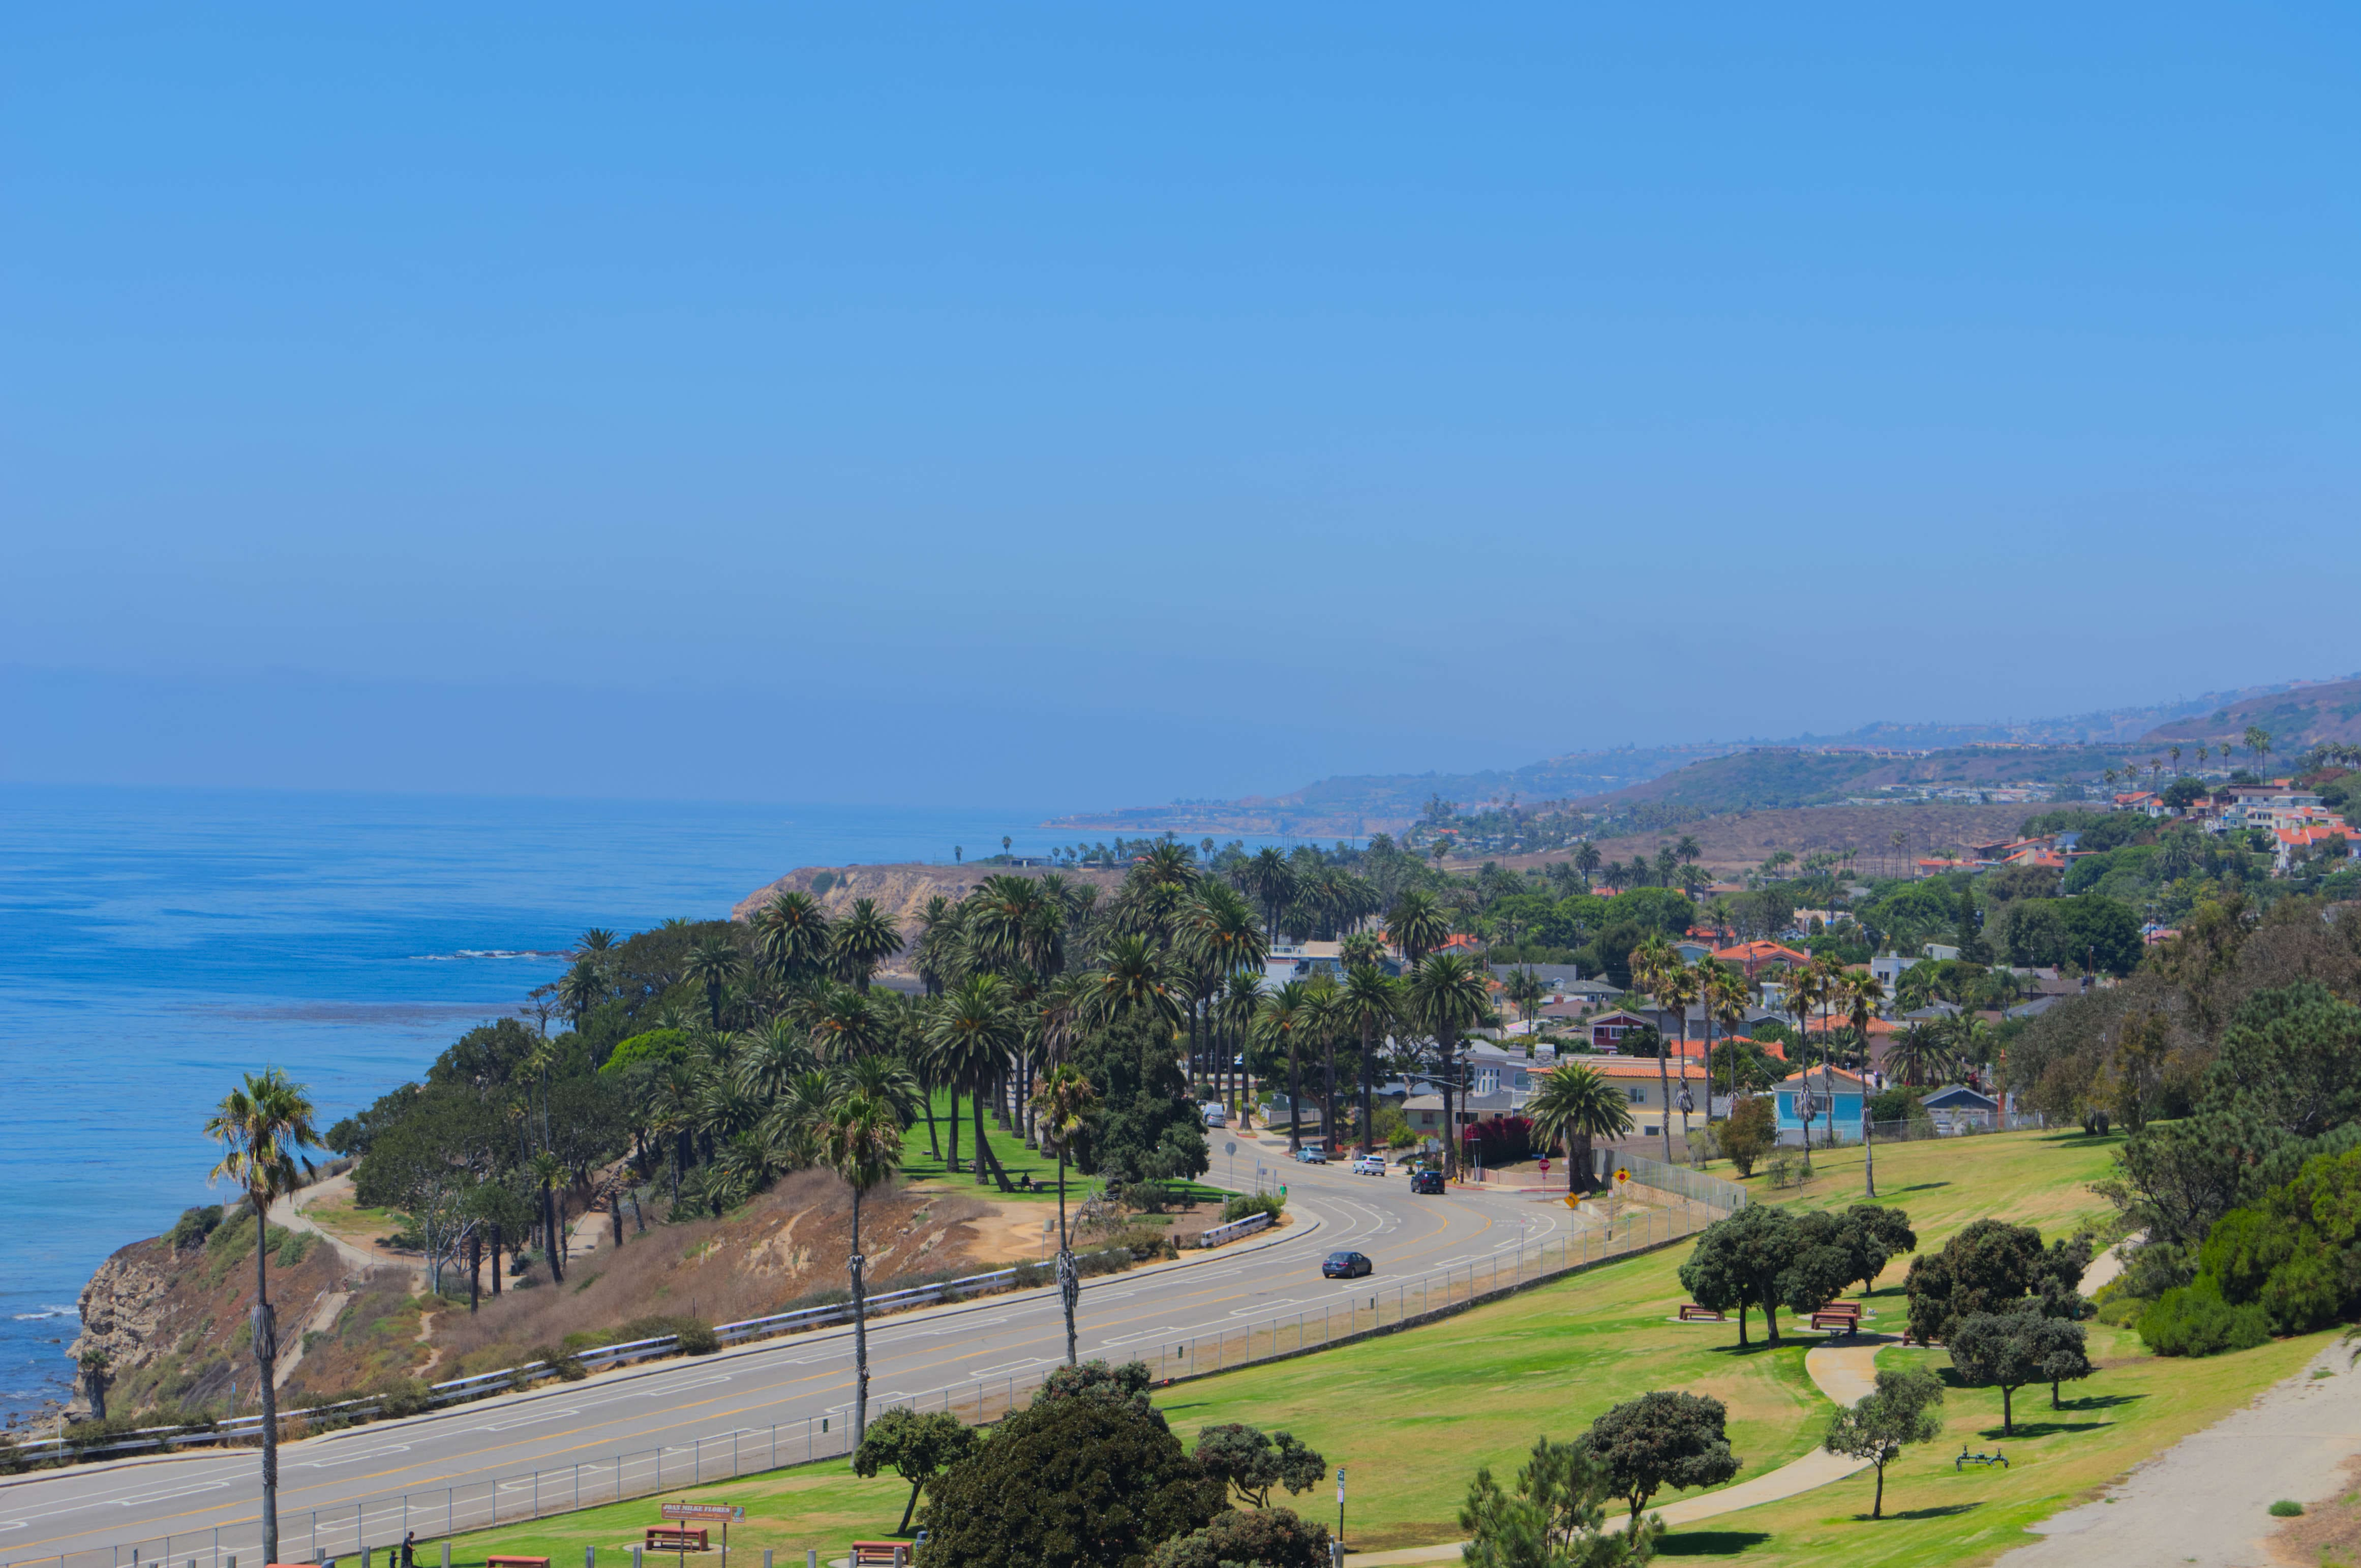 View of the California coast towards the Royal Palms State Beach from the Korean Bell of Friendship